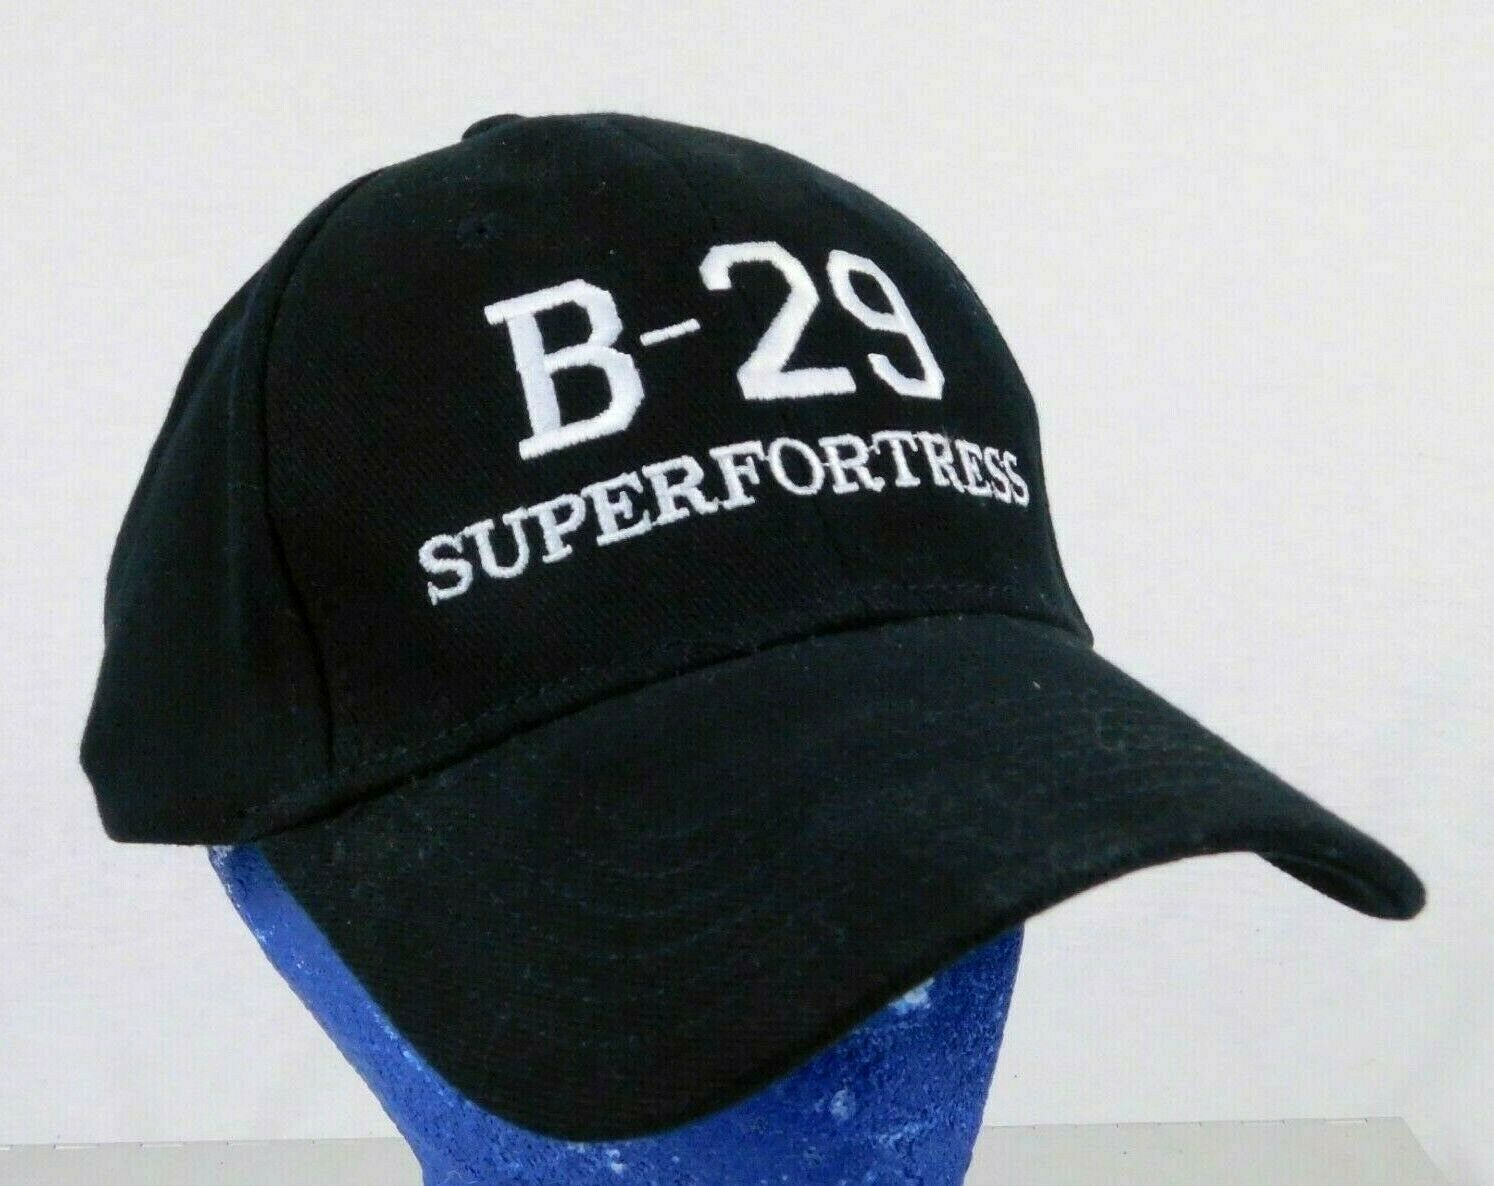 Primary image for B-29 Superfortress Plane Black Baseball Cap Hat Commemorative Air Force Box Ship